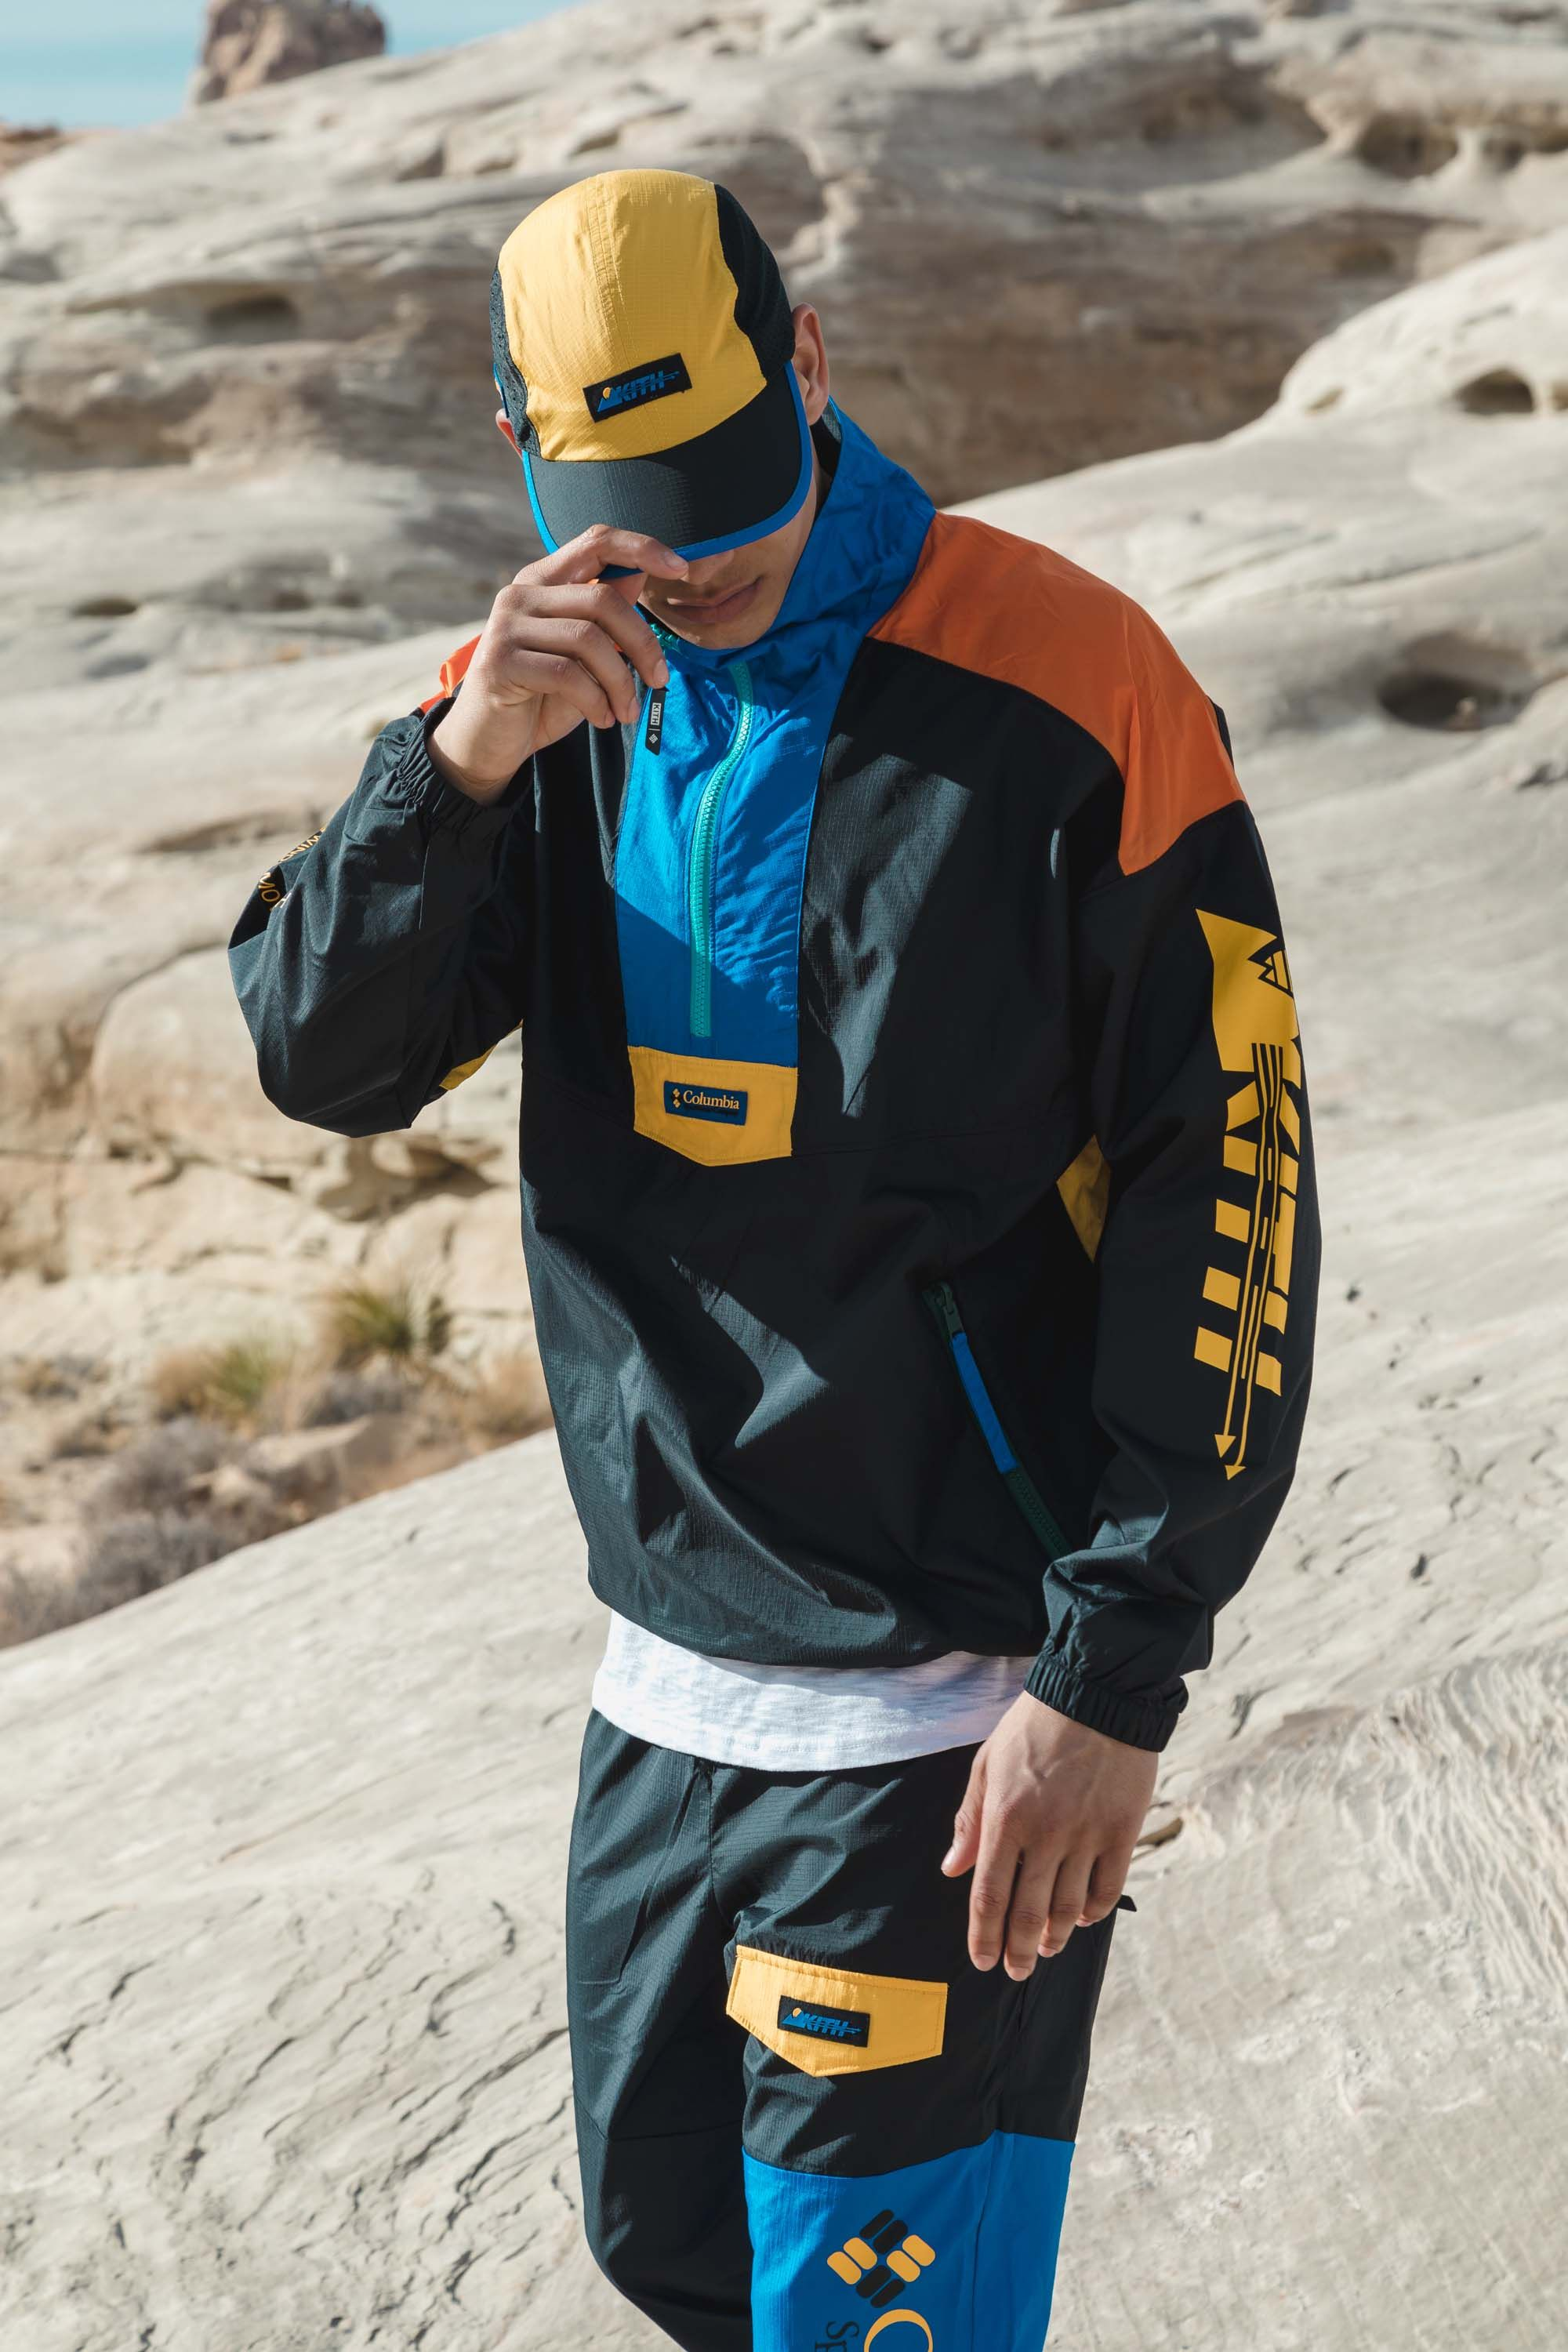 2e9bb2961b6 Kith Element Exploration Agency Collection - Kith s Latest Collection  Brings Some Southwestern Heat to the World of Streetwear